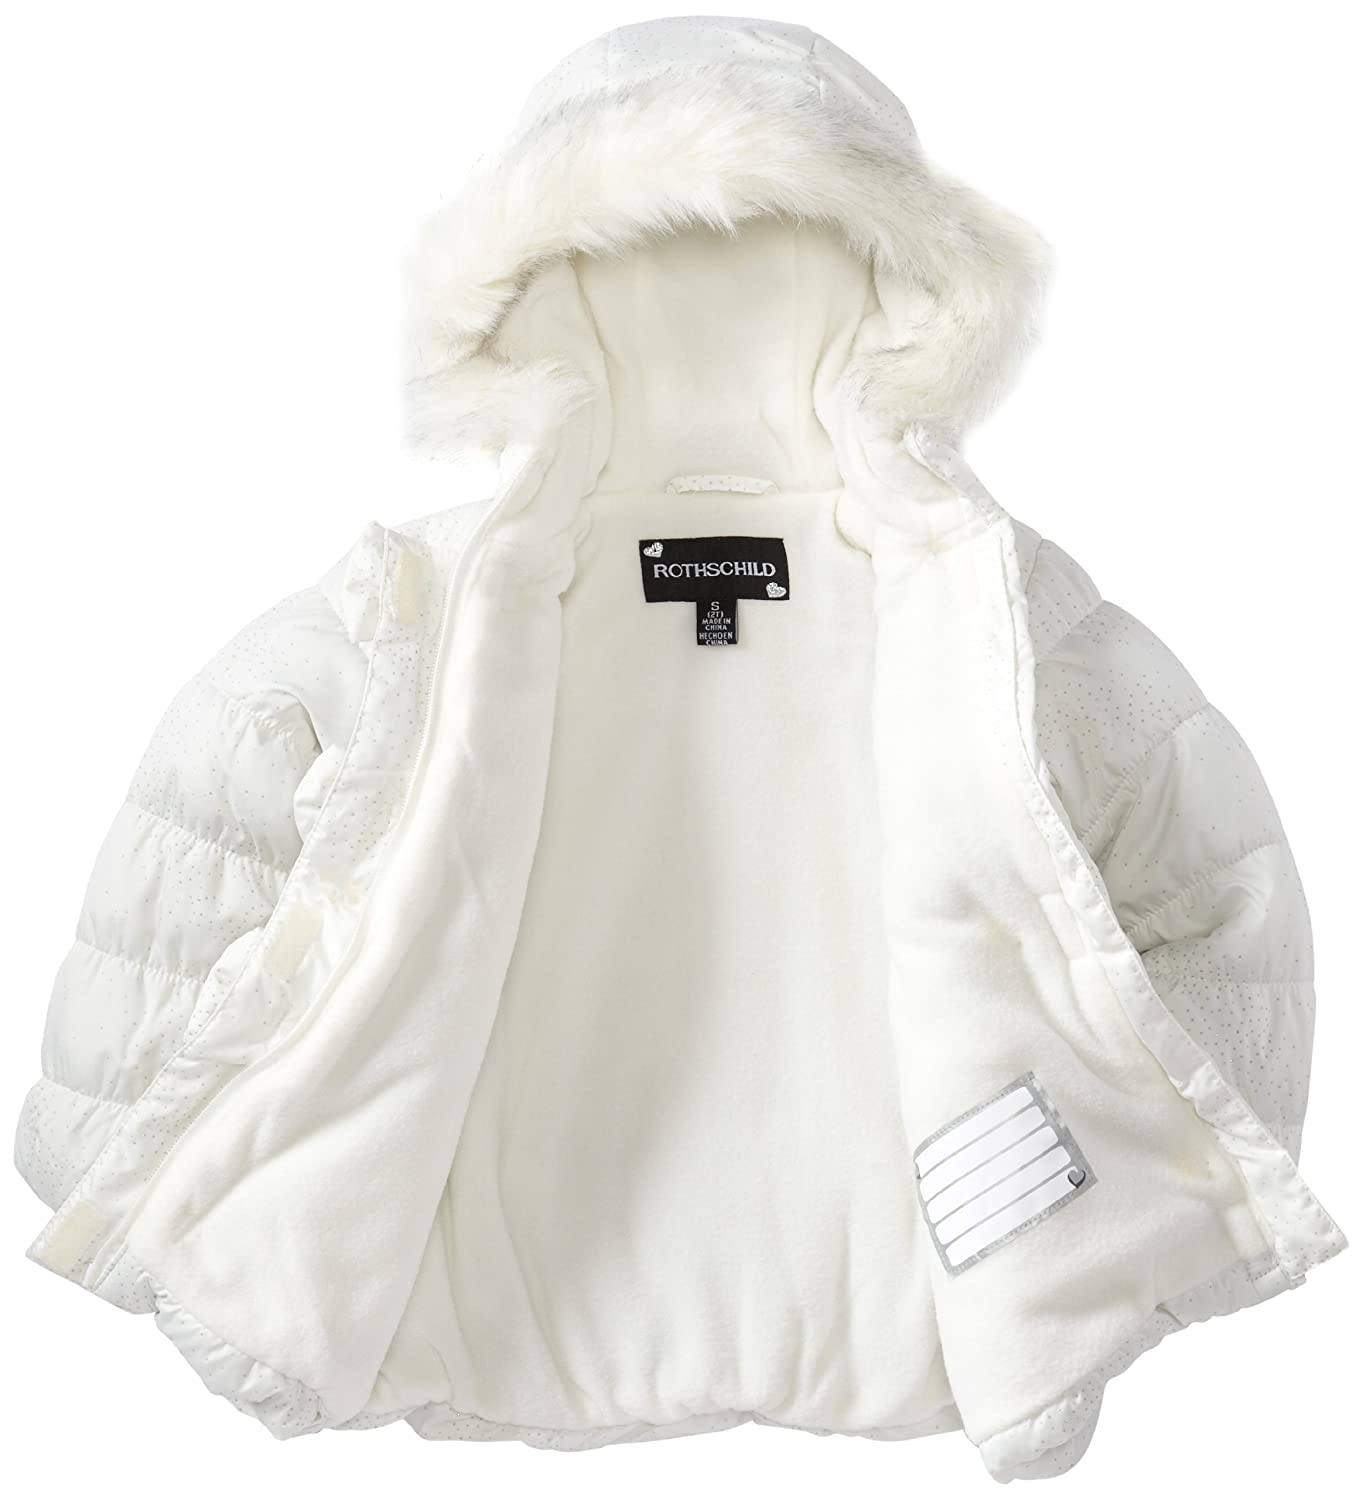 c48113773 Amazon.com  Rothschild Little Girls  WIH Sparkle and Bows Coat ...